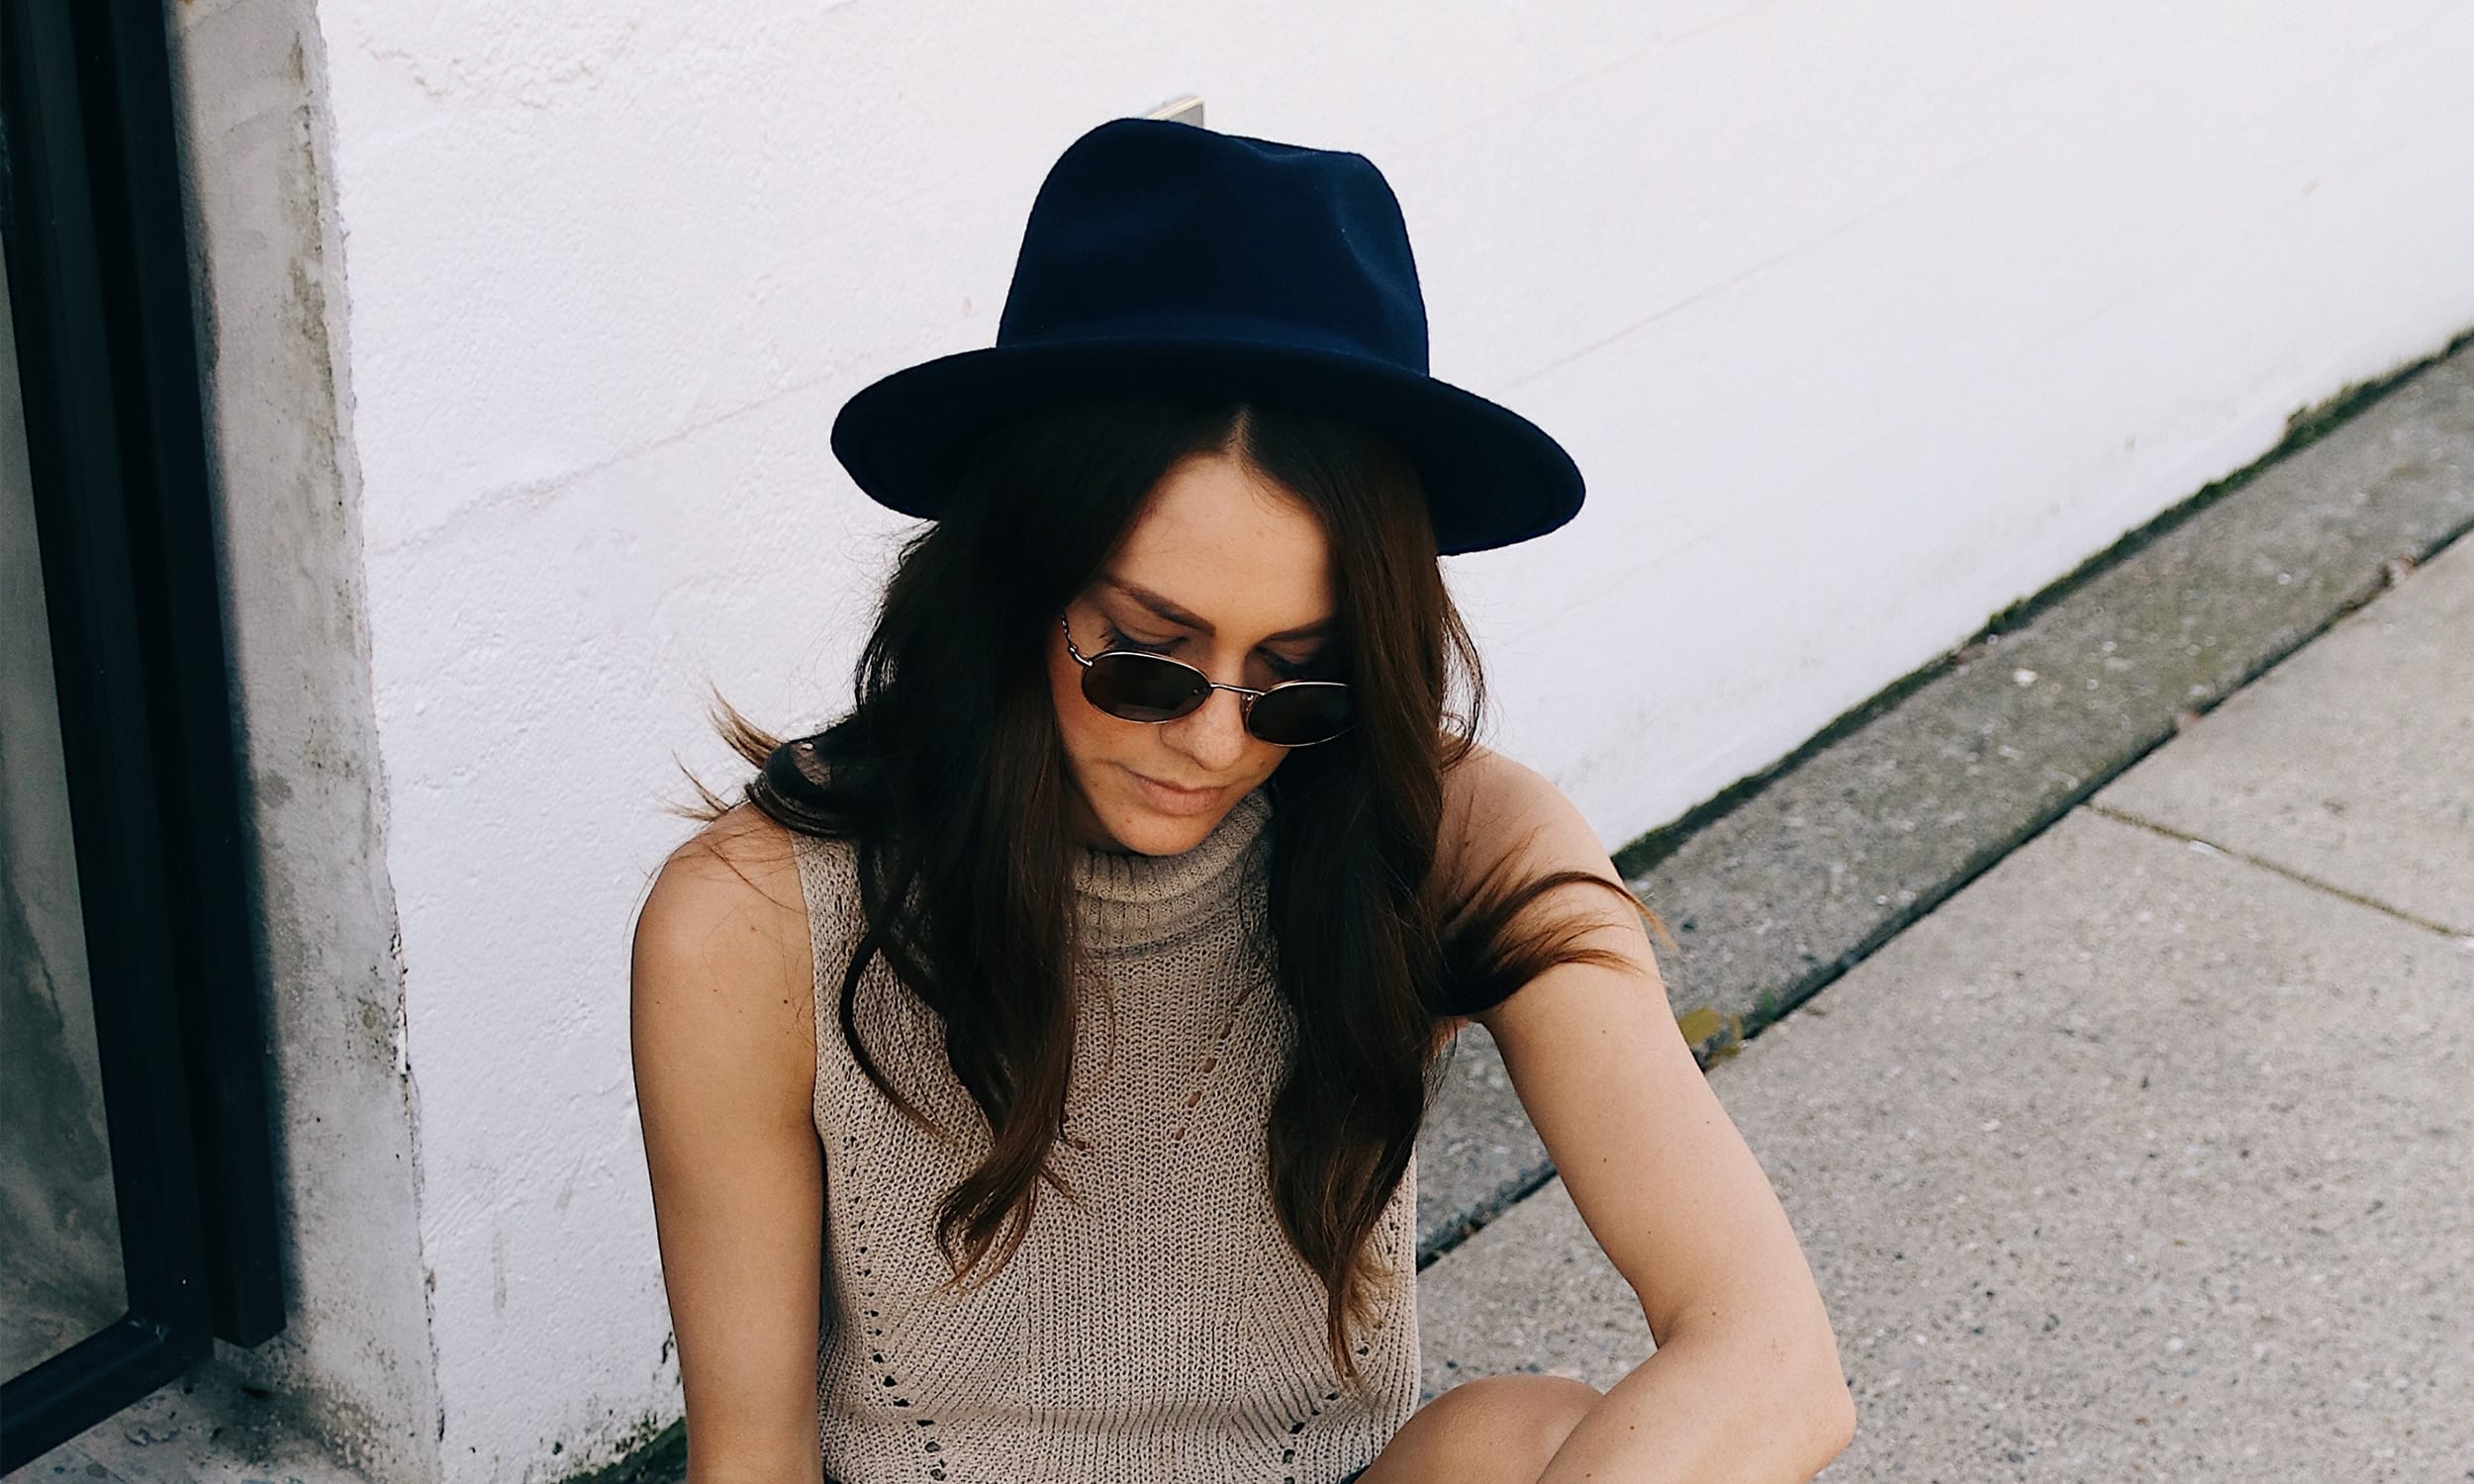 987dd1e64321 Here are some ideas for stylish and comfortable travel outfits—from your  hometown